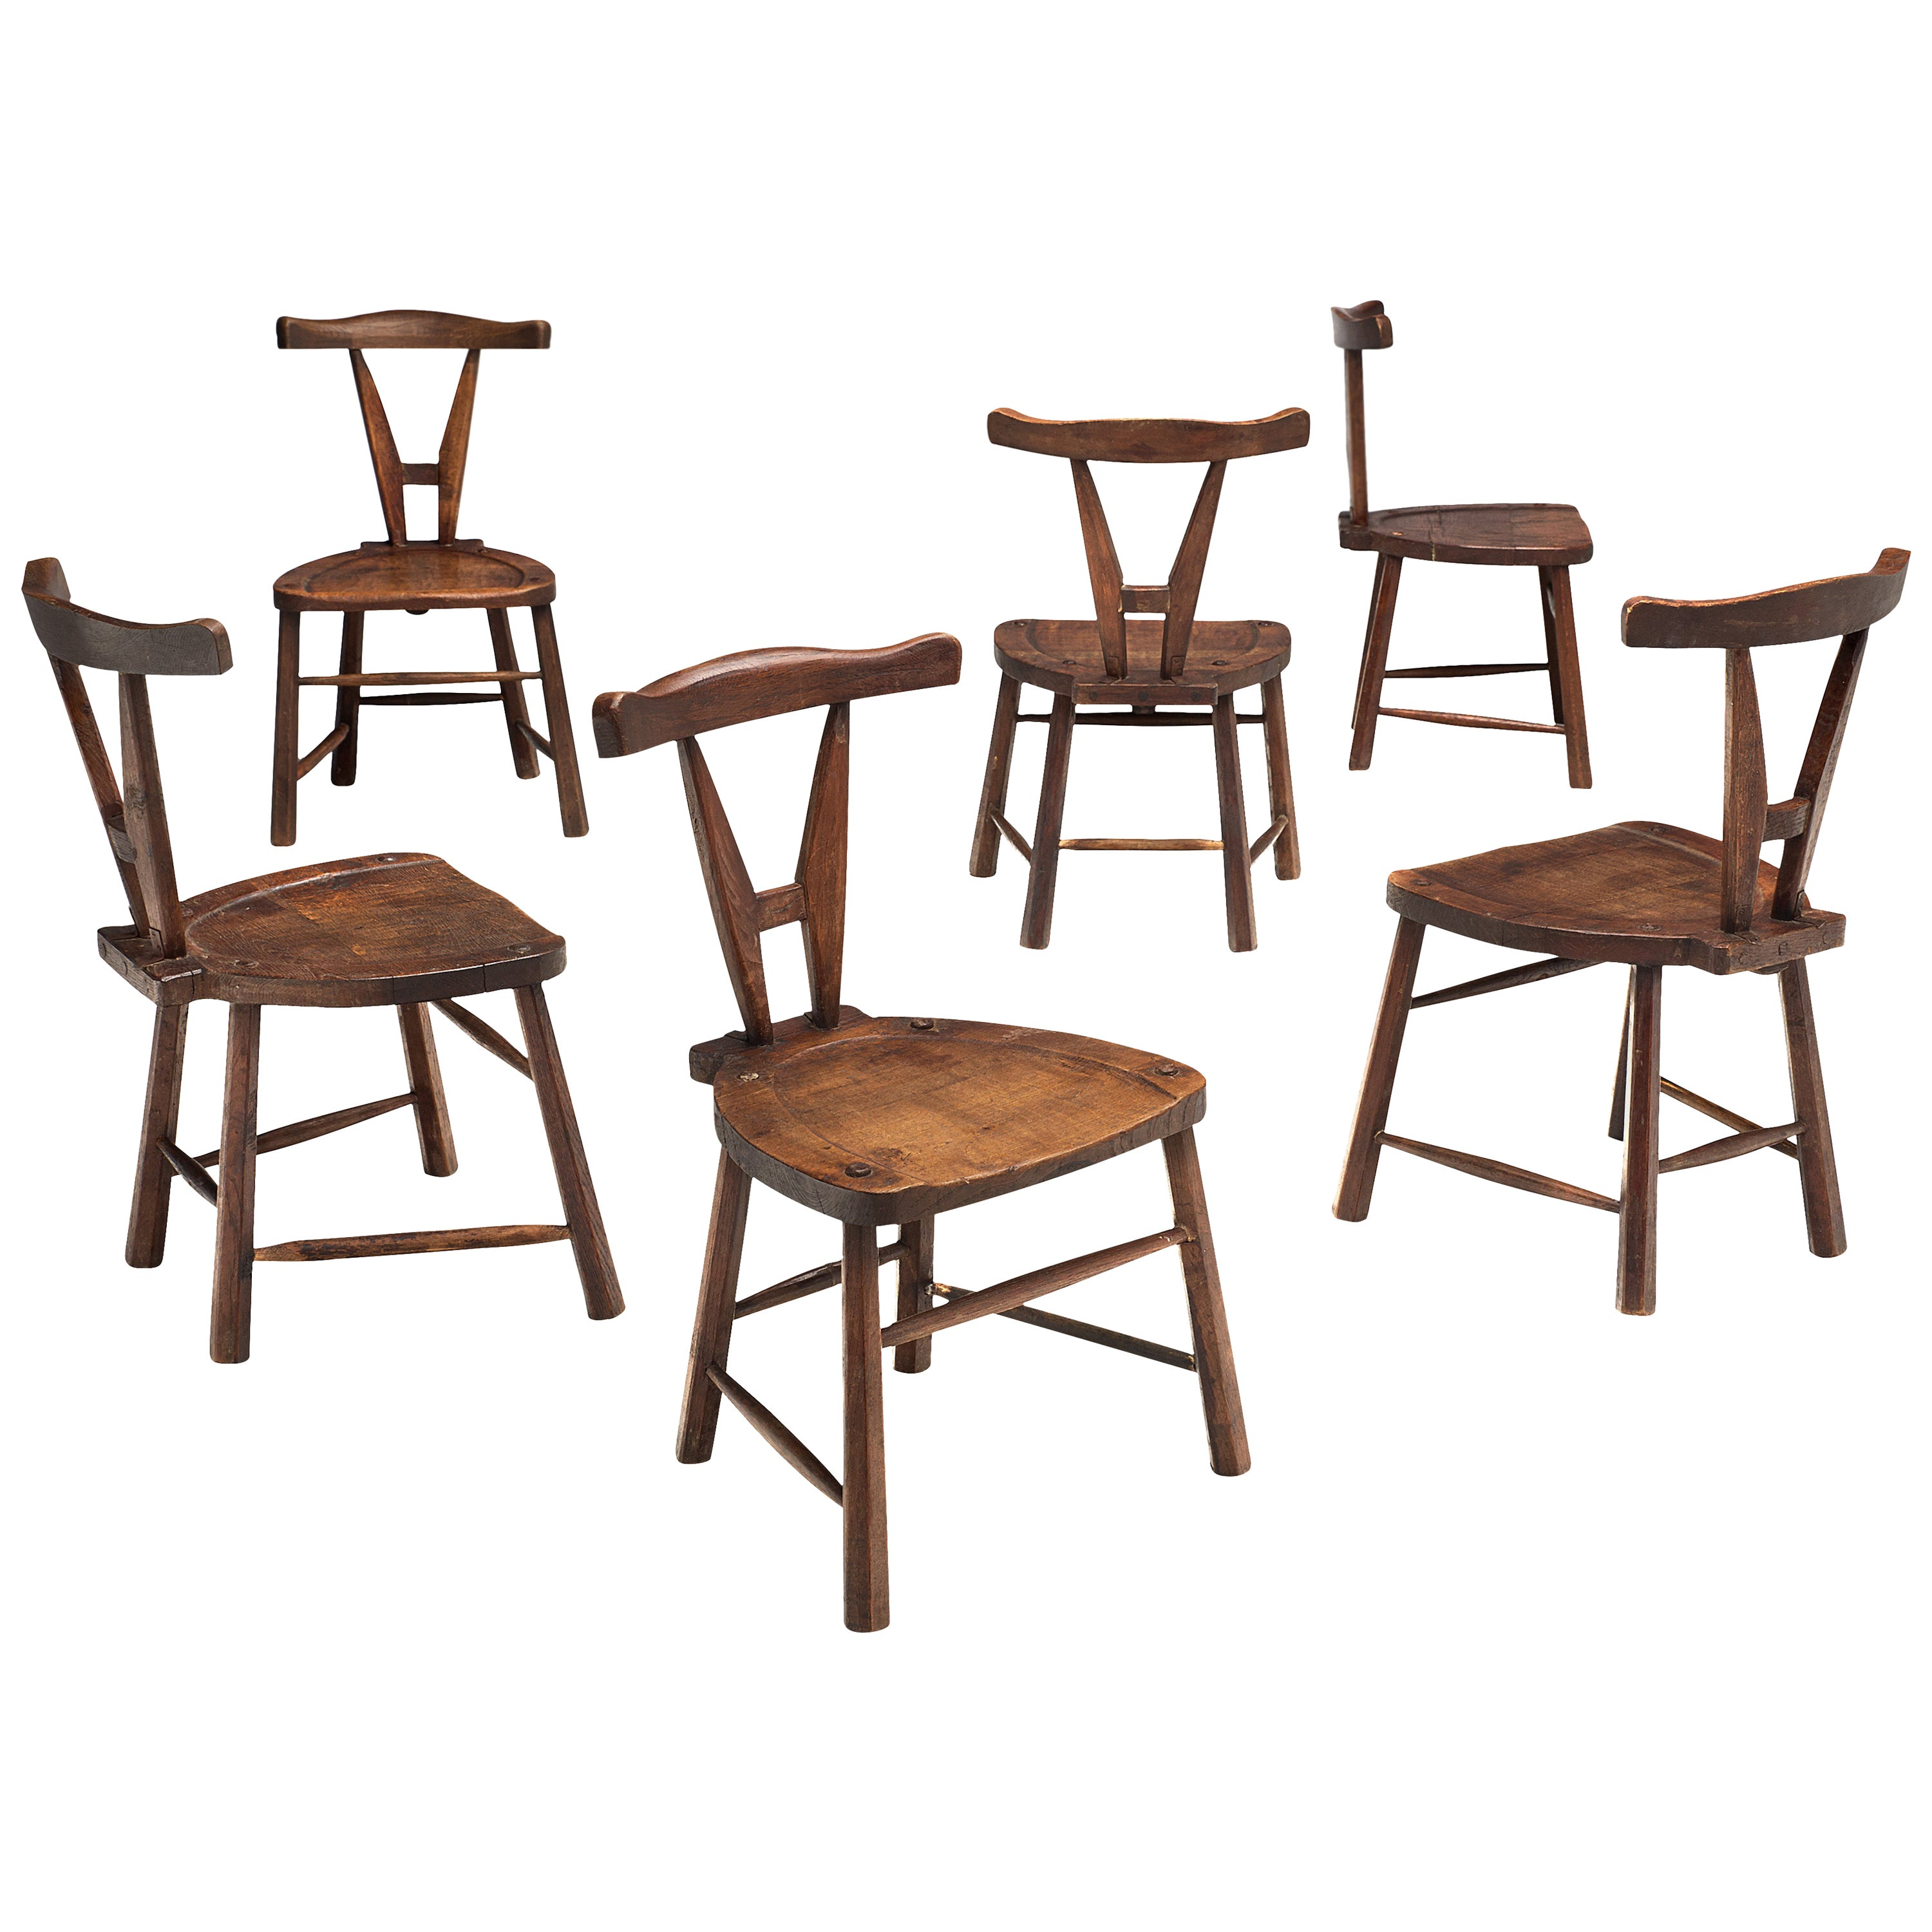 Sculptural Set of Six French Chairs in Solid Oak